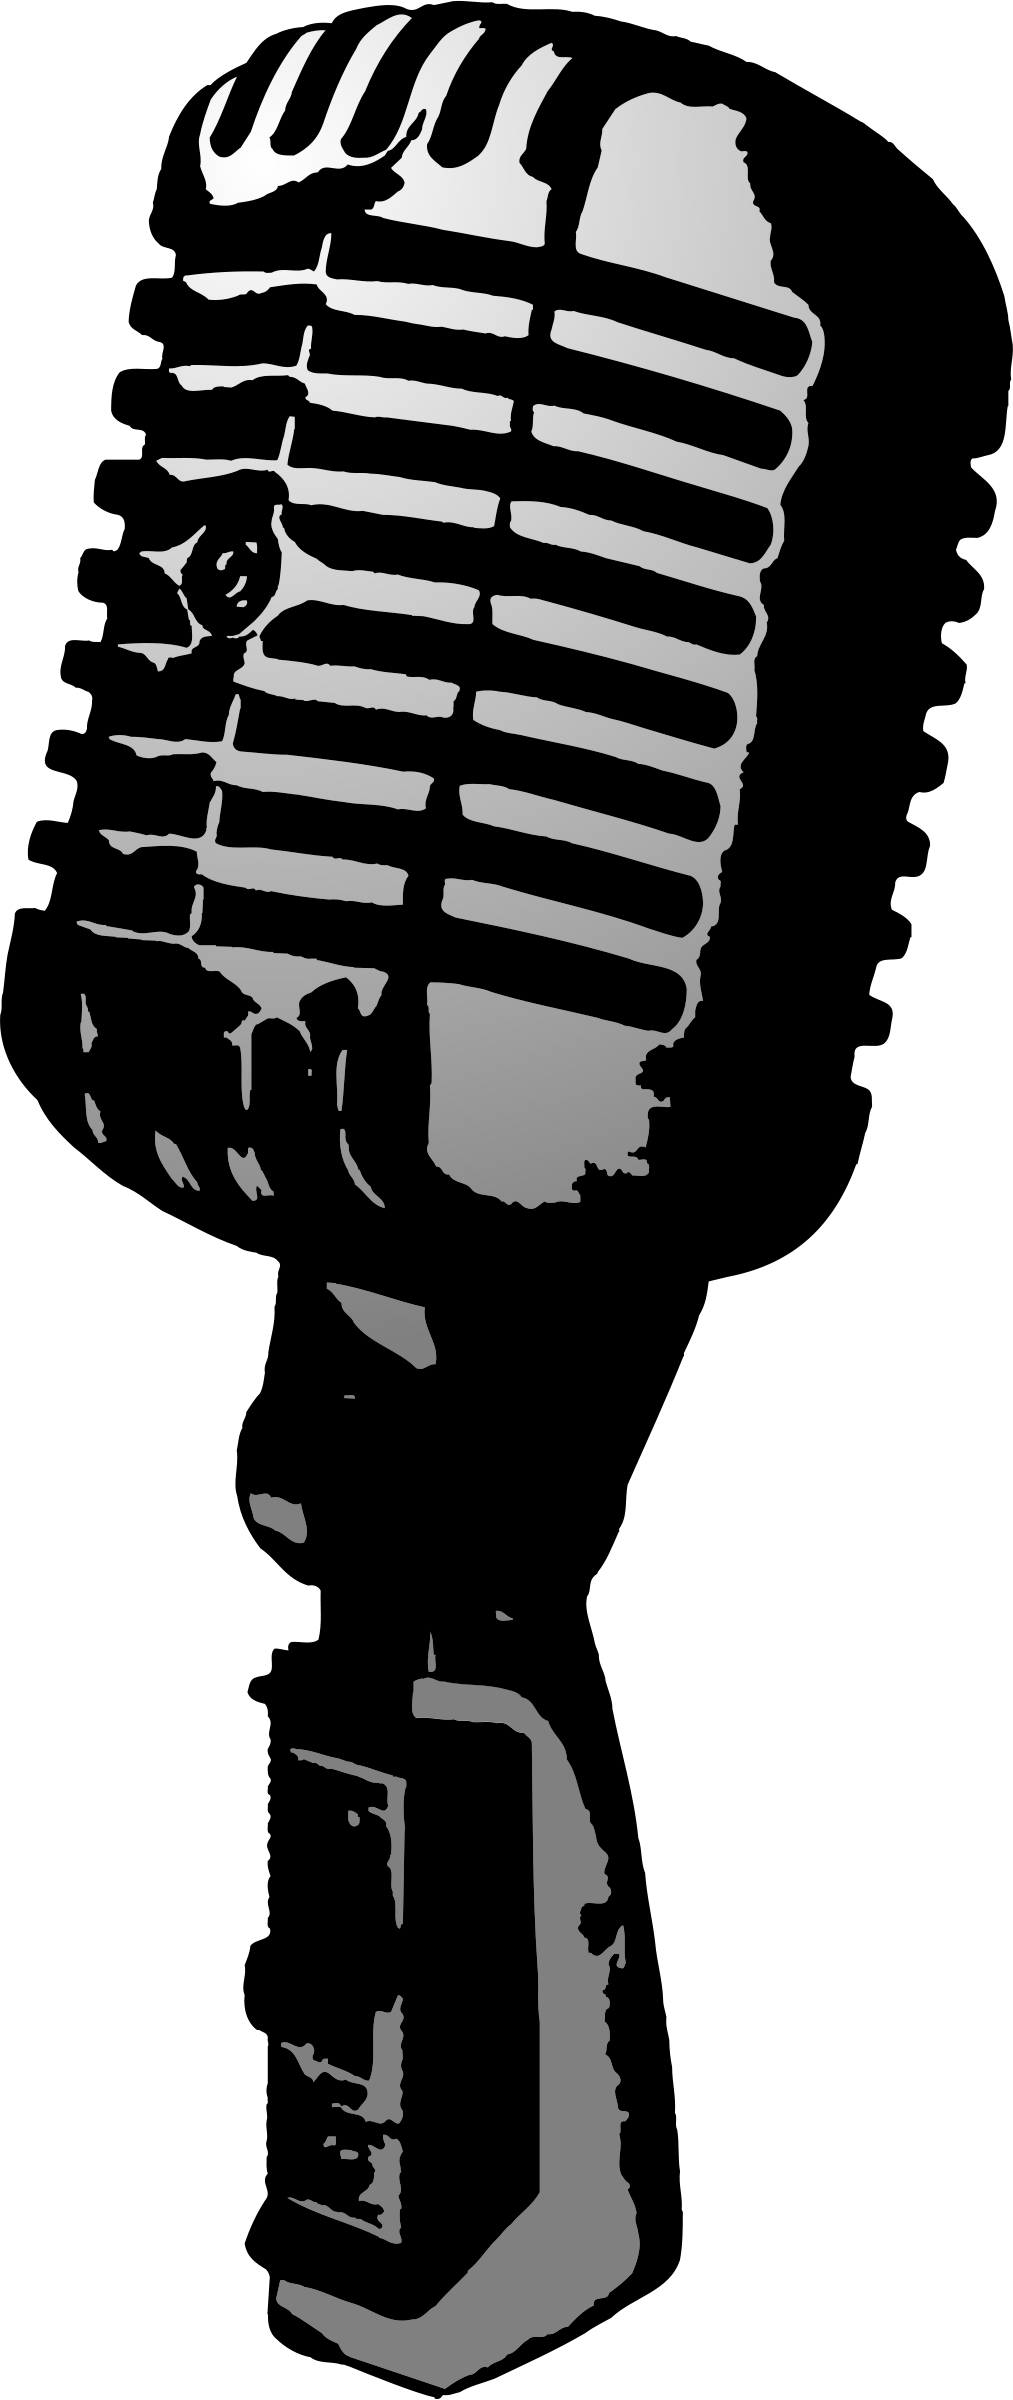 Free temperature cliparts download. Microphone clipart condenser microphone